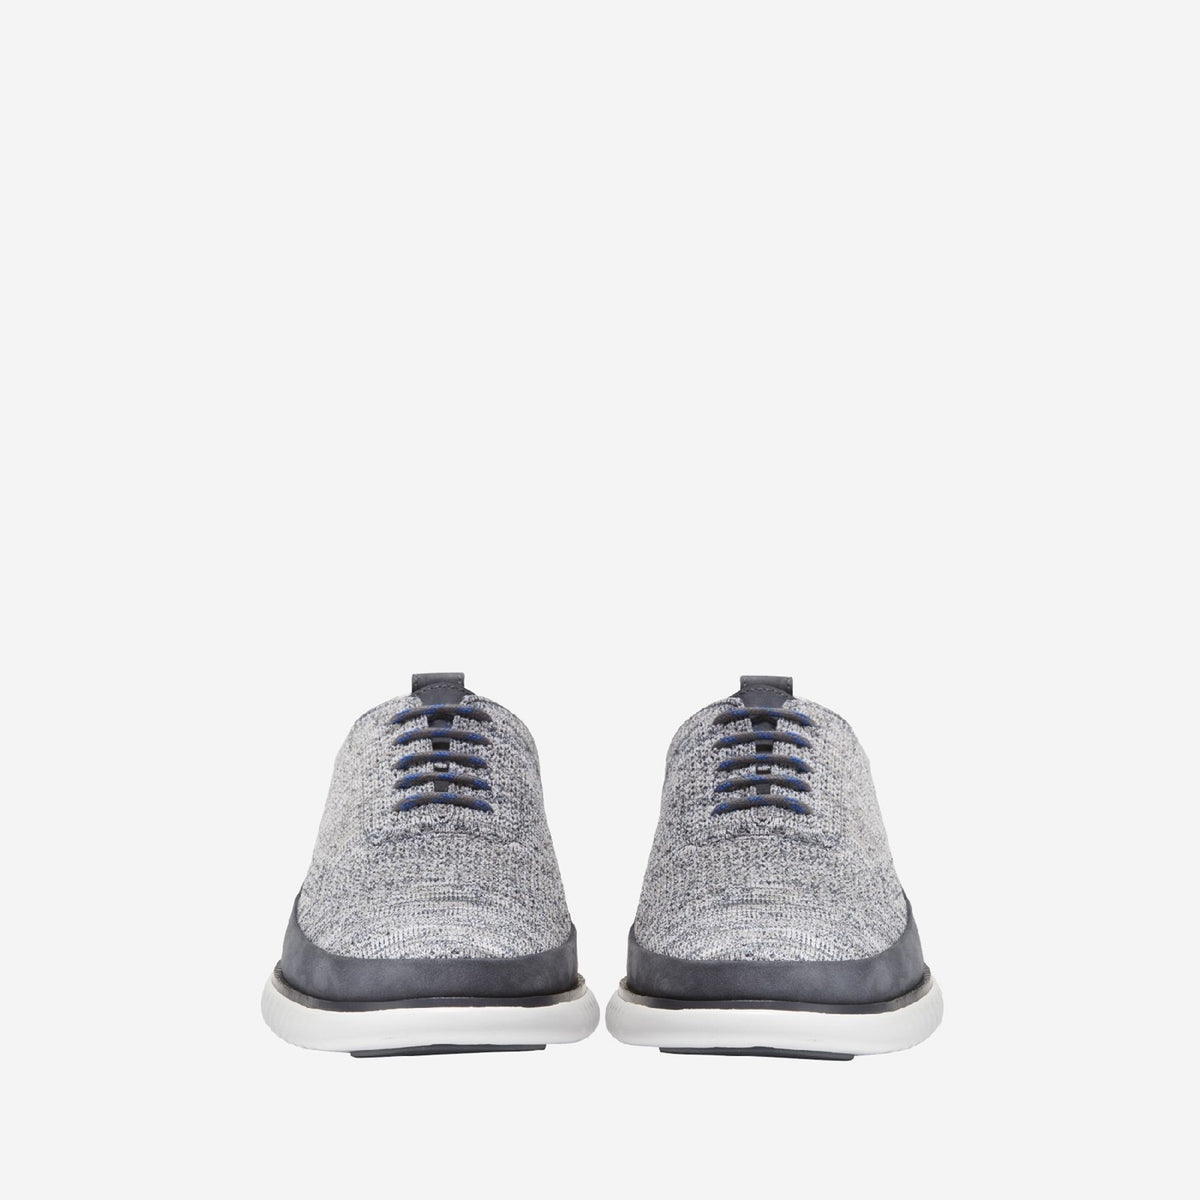 Men's 2.ZERØGRAND Stitchlite Oxford Blue/Sleet